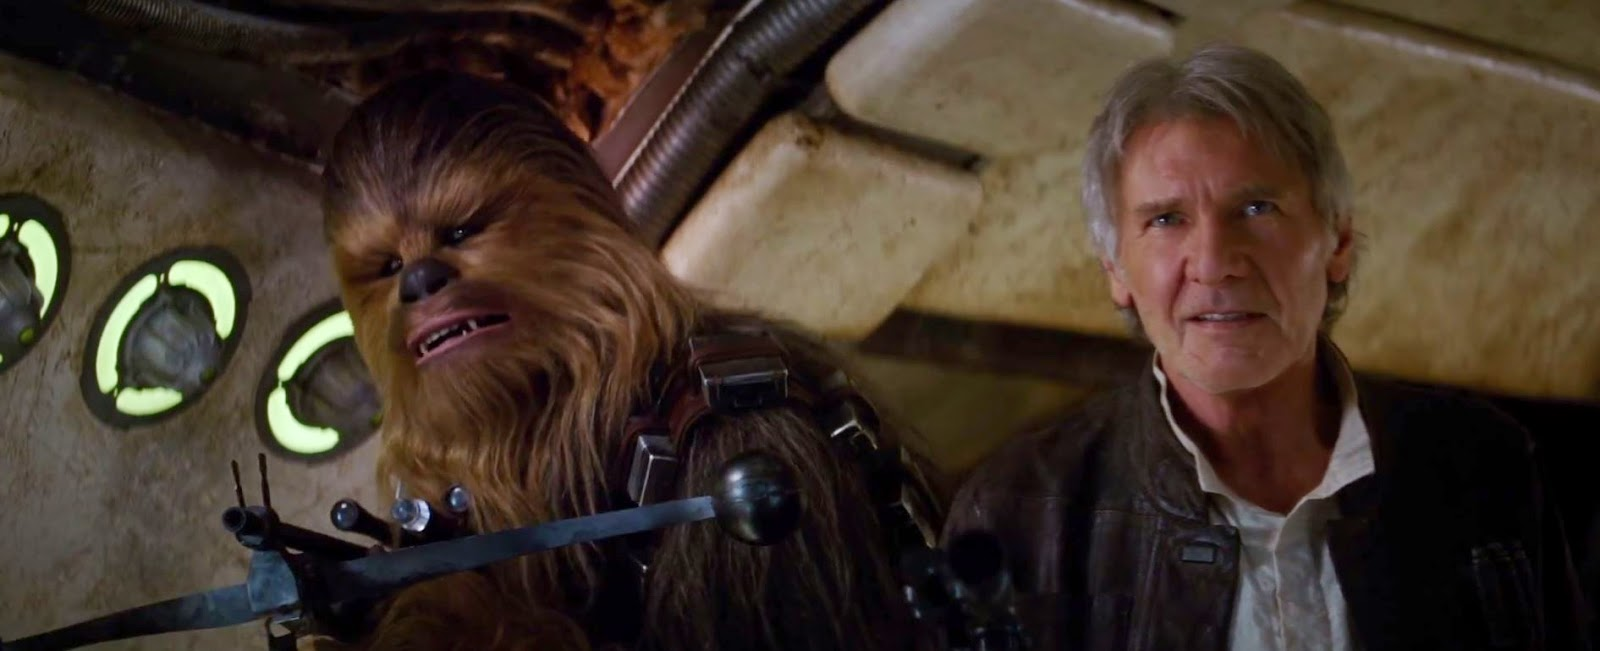 Han Solo Quotes From The Force Awakens